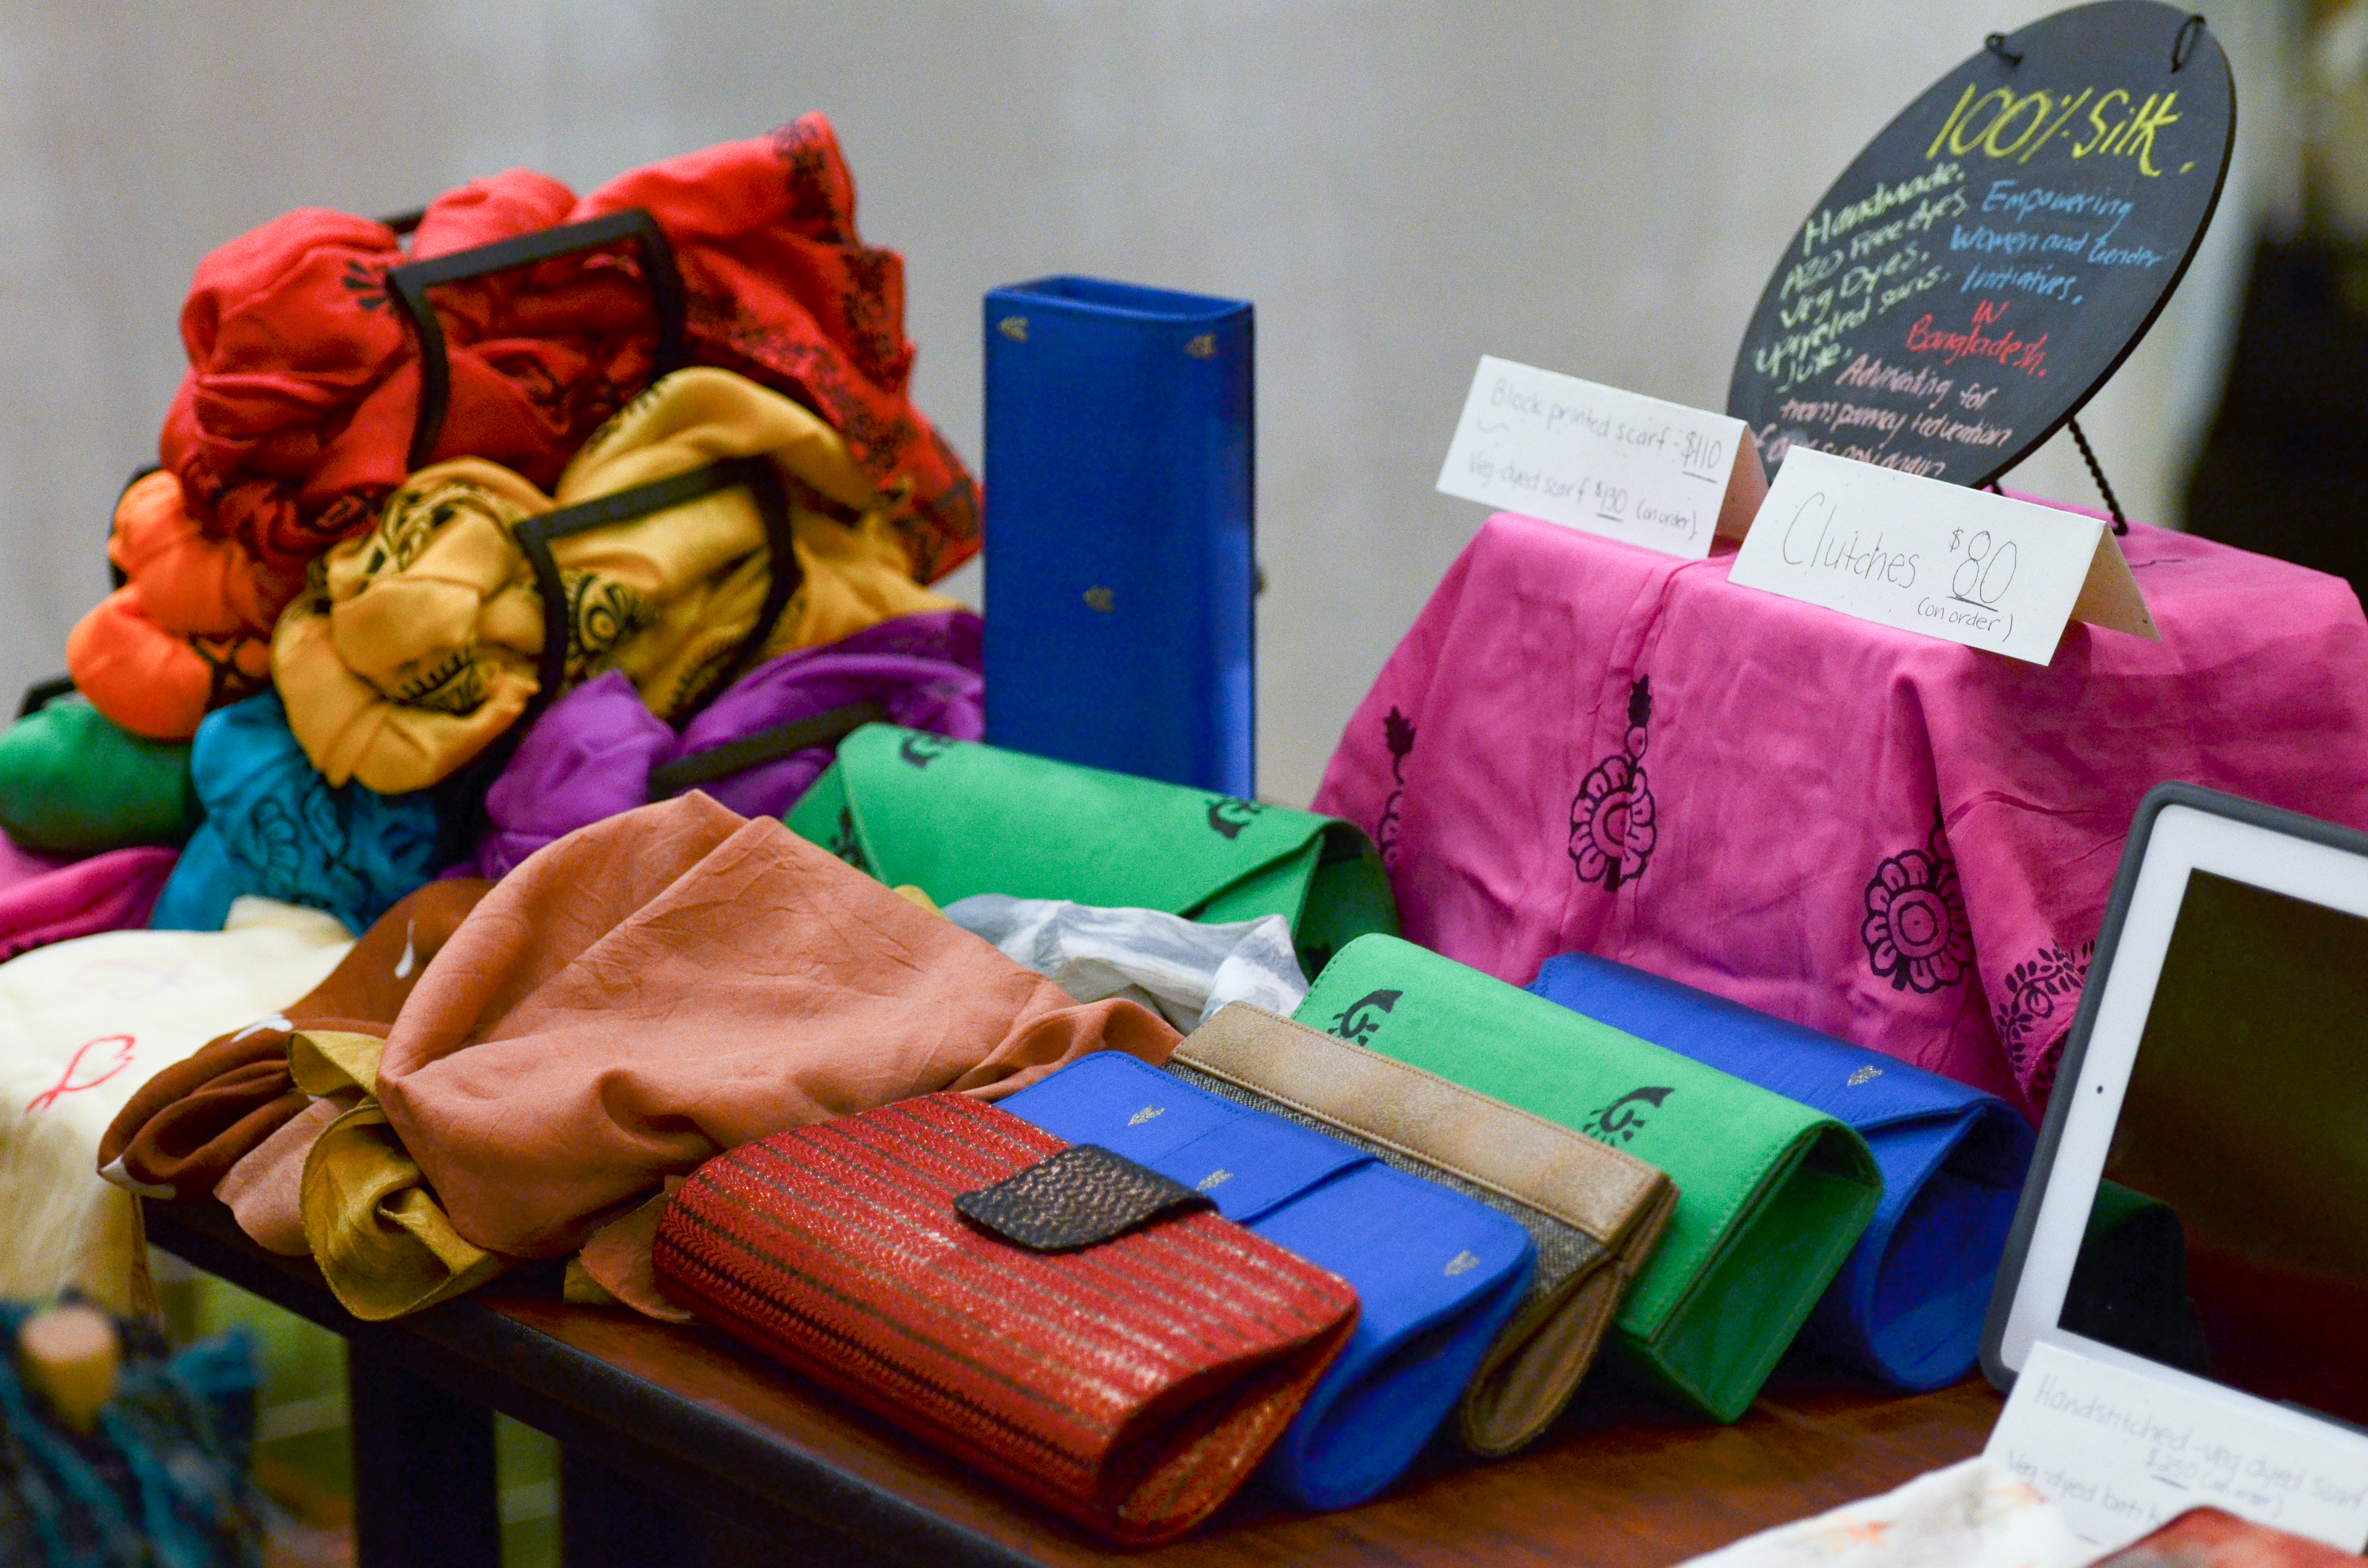 Evolvemint booth during Redress Eco-Fashion and Textiles Conference Marketplace